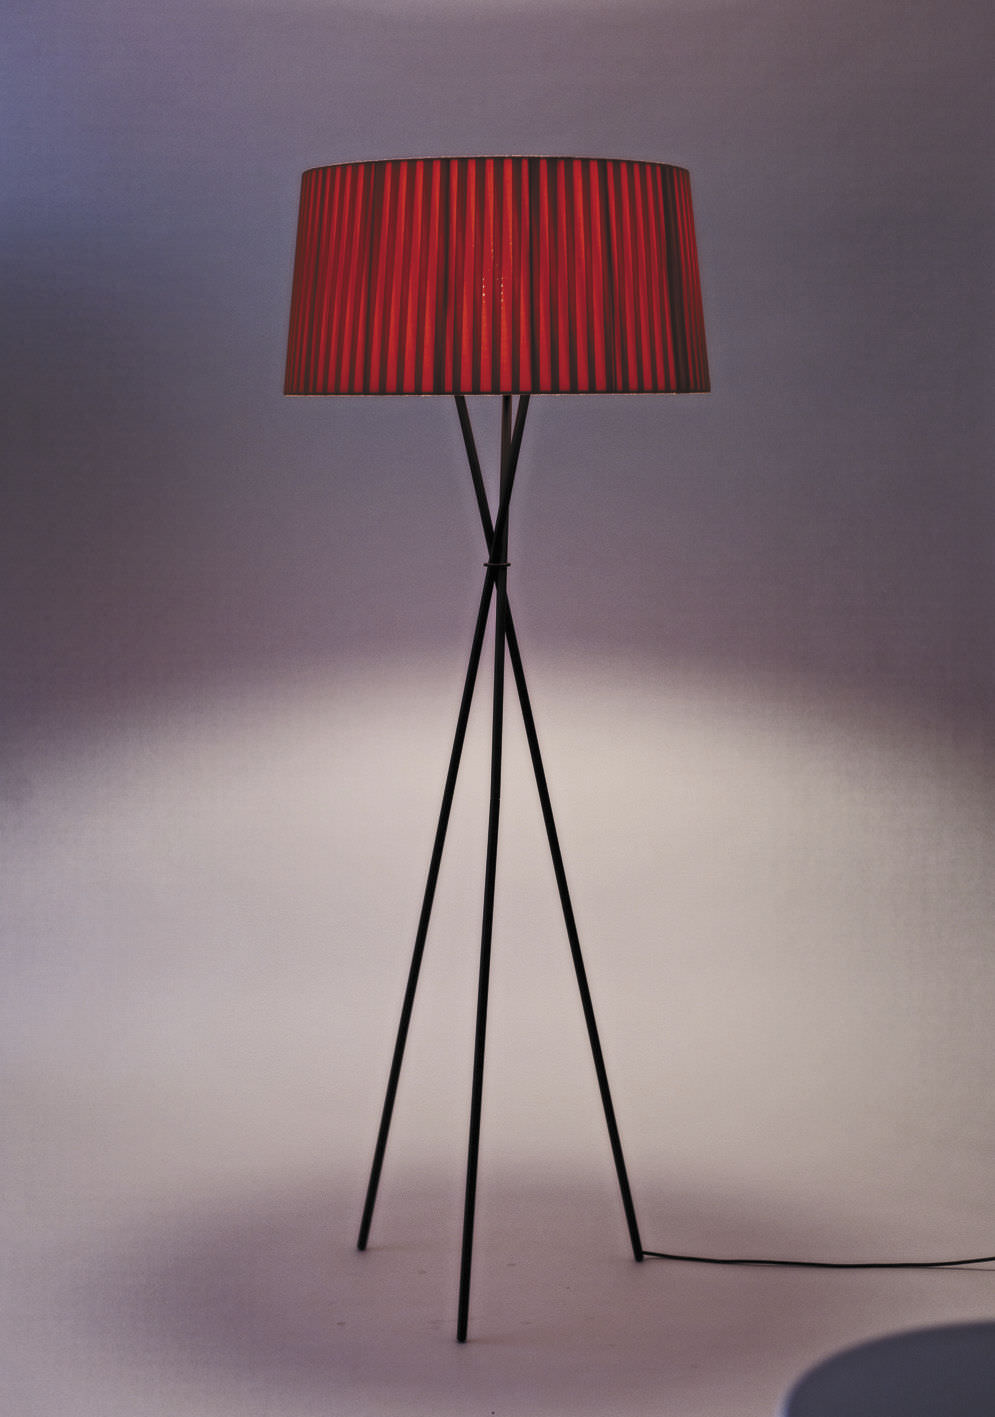 Floor-standing lamp / contemporary / metal / fabric - TRÍPODE G5 by ...